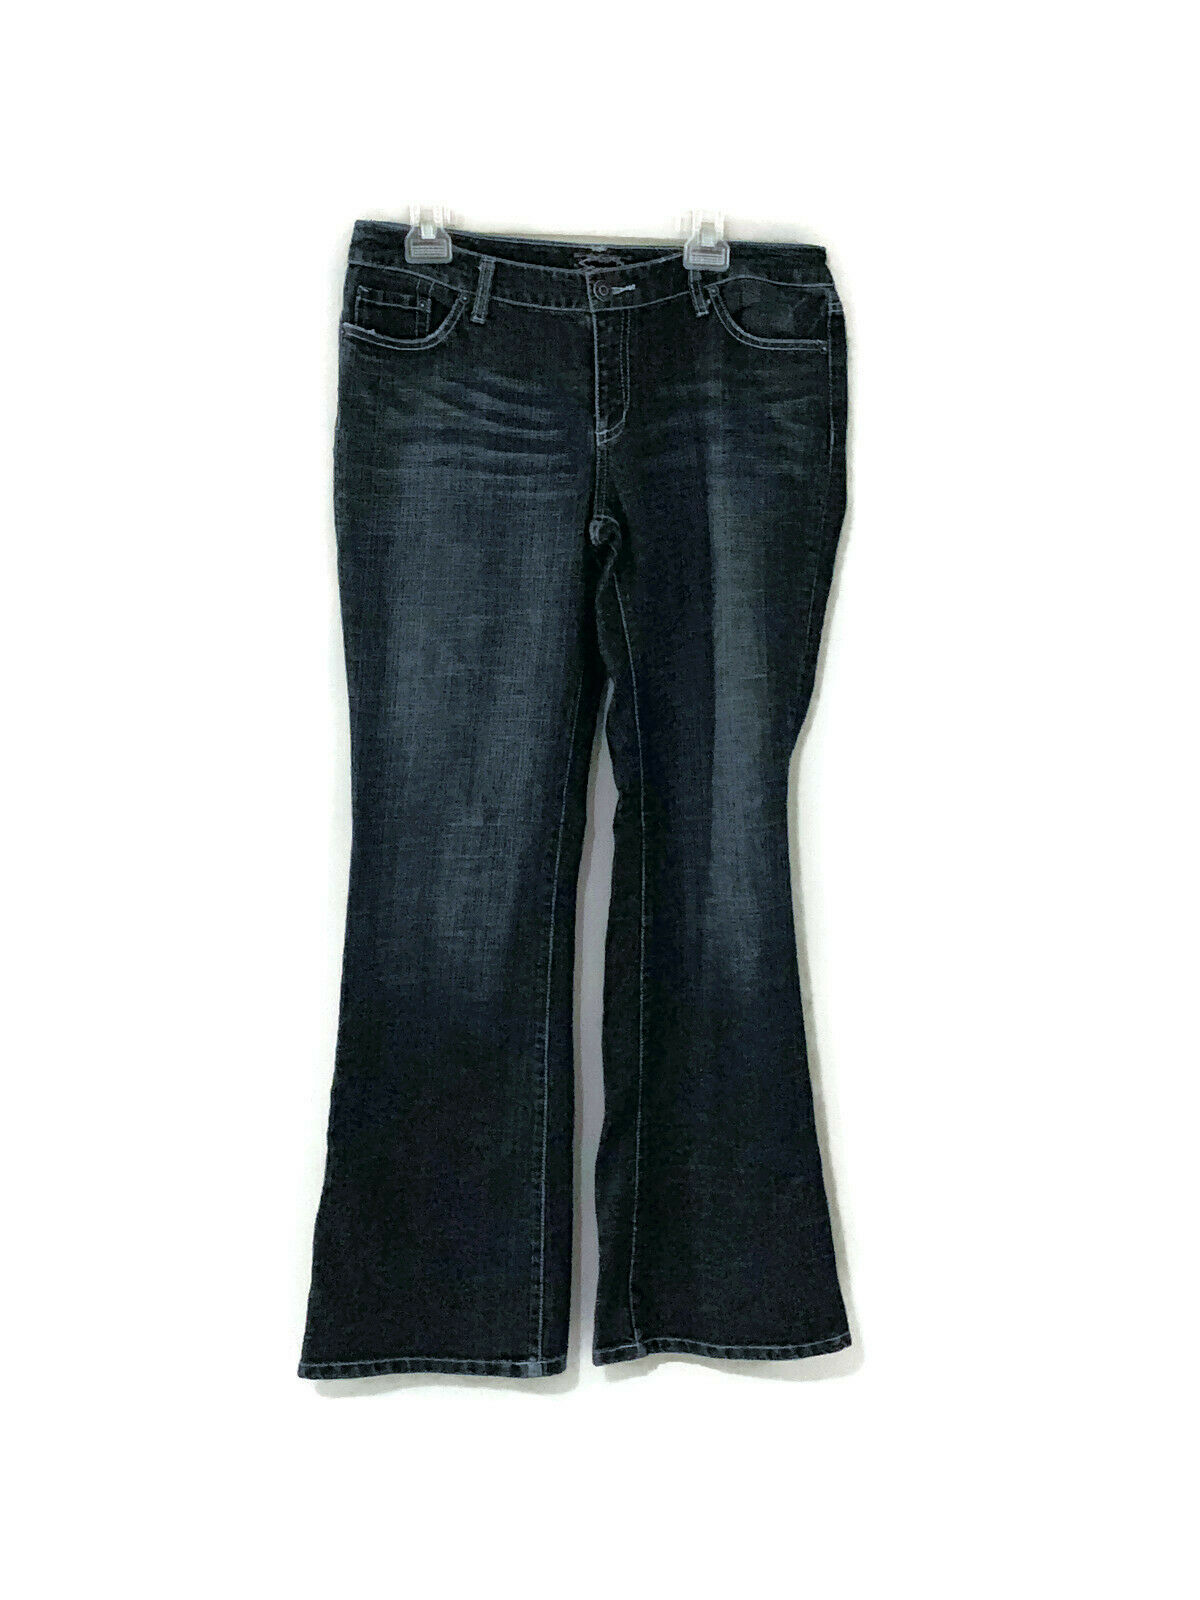 Seven for All Mankind 7 Jeans    Flare    Women's Size 32 Dark Wash